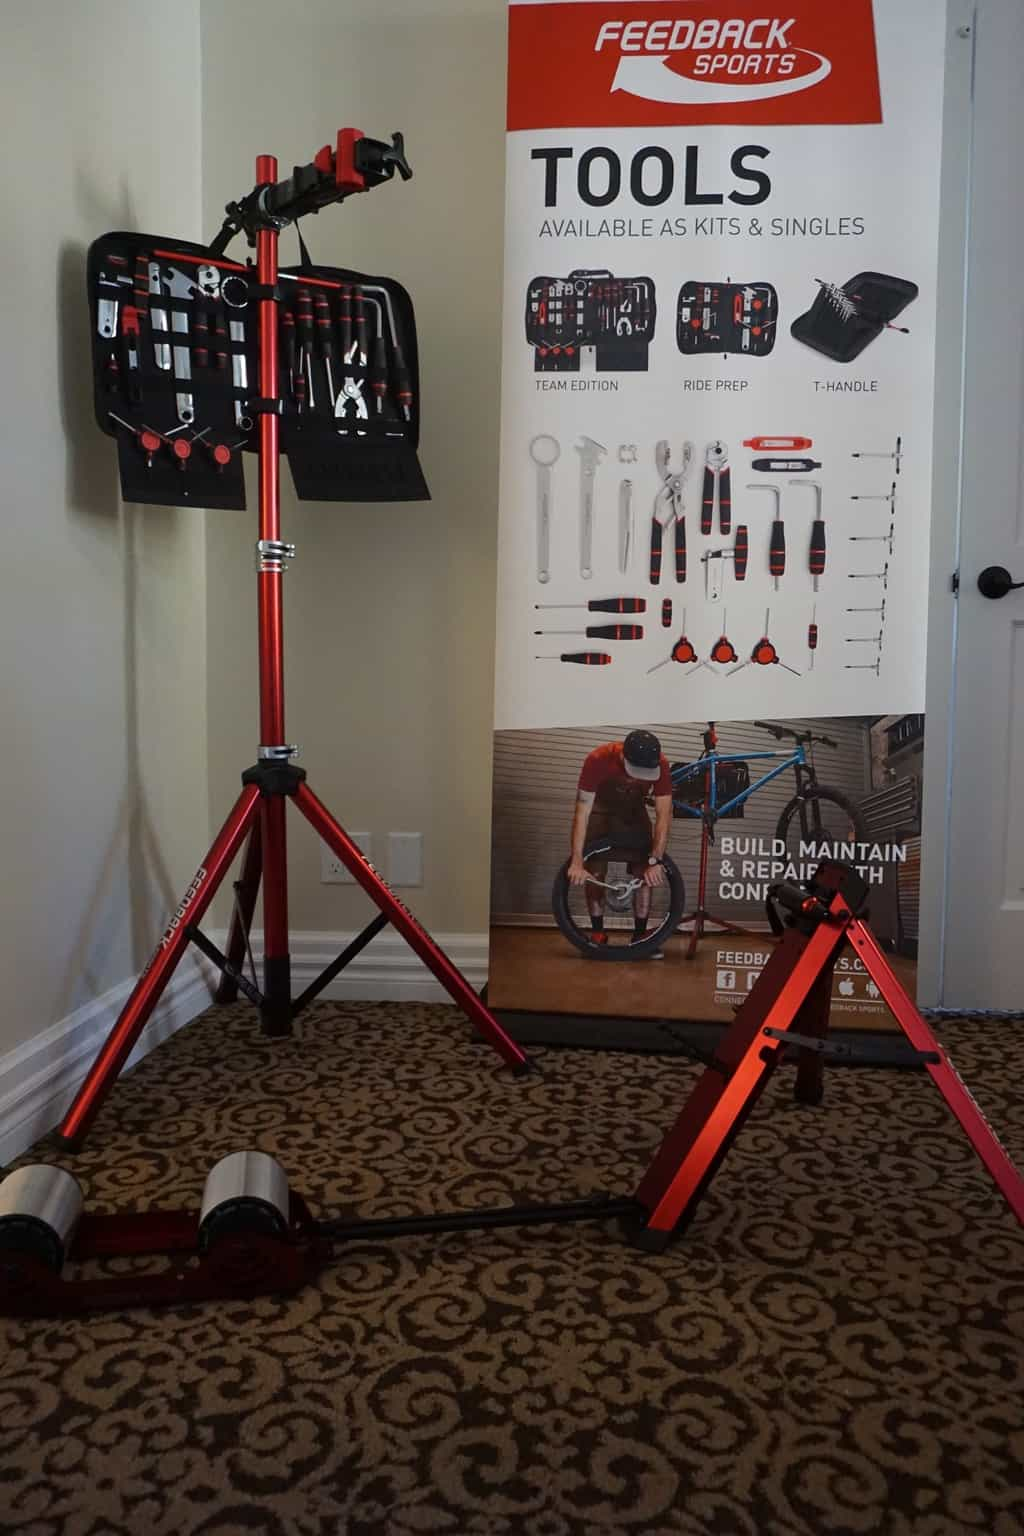 FeedBack Sports had their new line of tools on display that work well with their mobile bike stands. Their trainer was also a favorite of ours as well with its easy functionality.